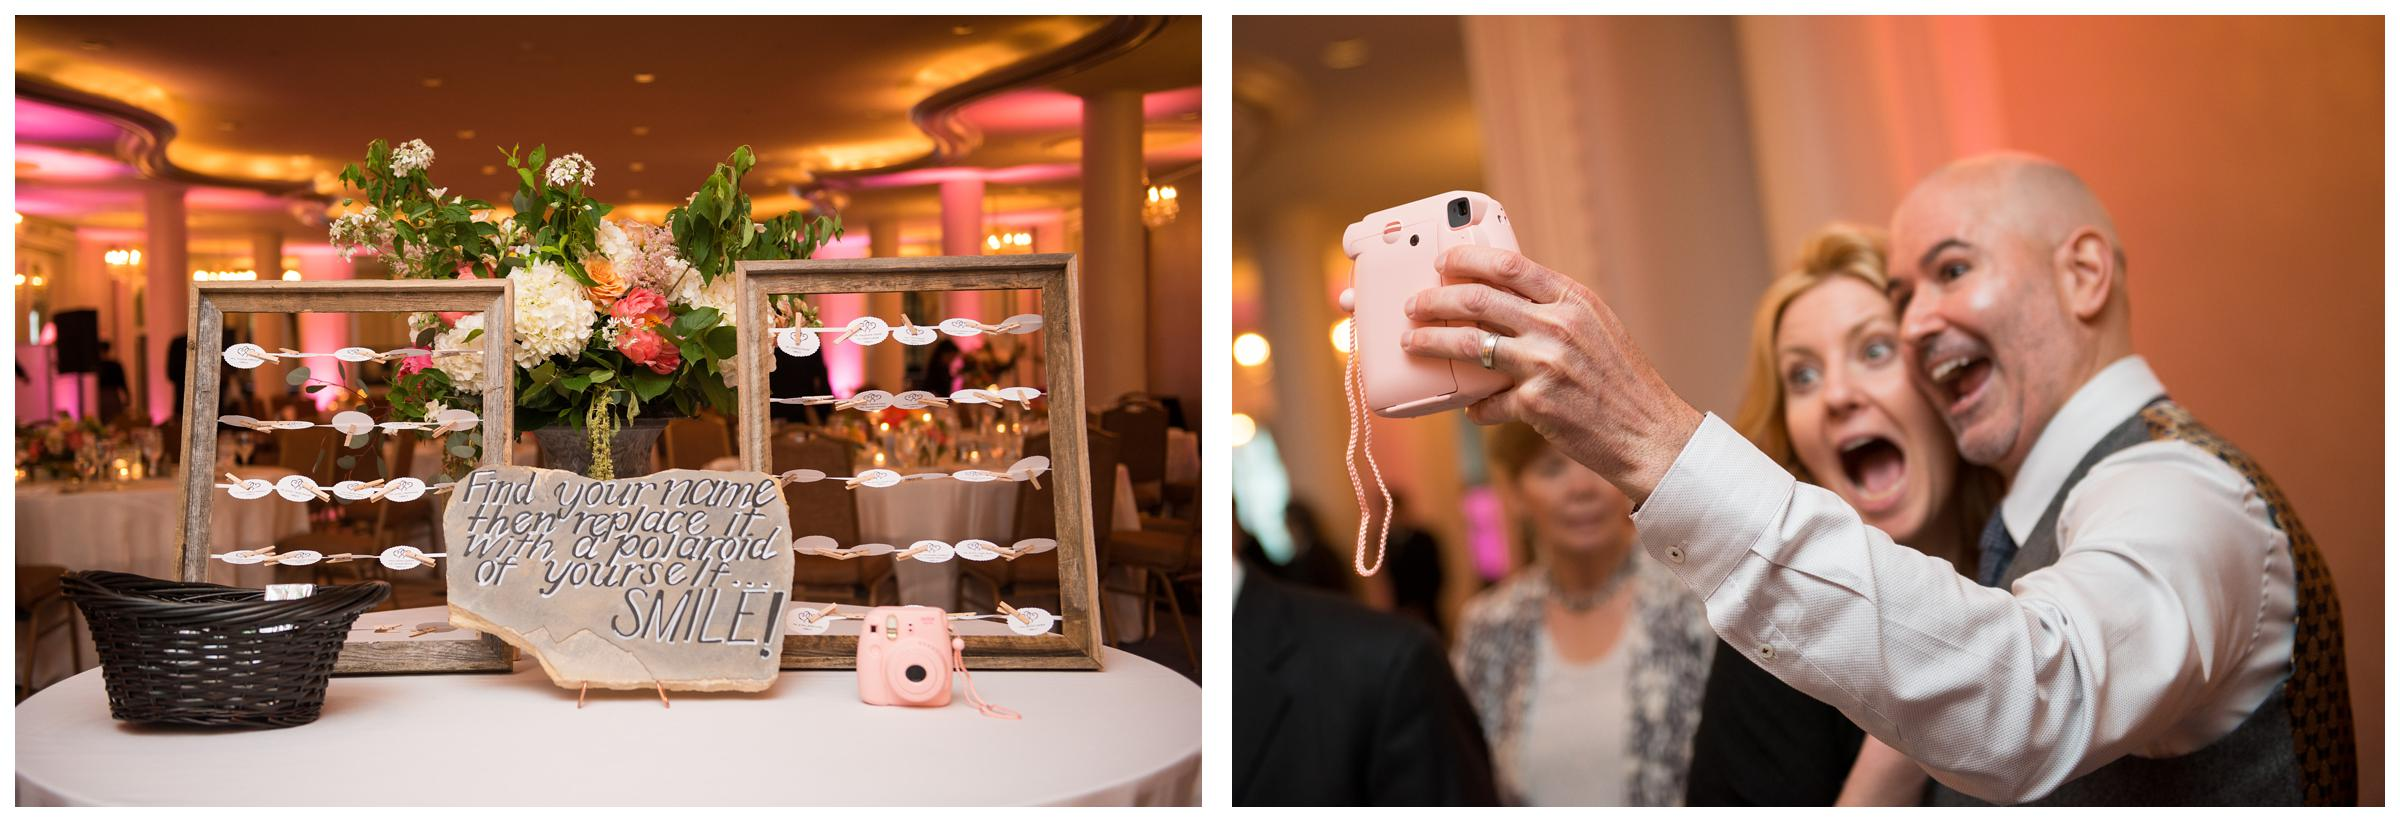 guests take polaroids during wedding reception